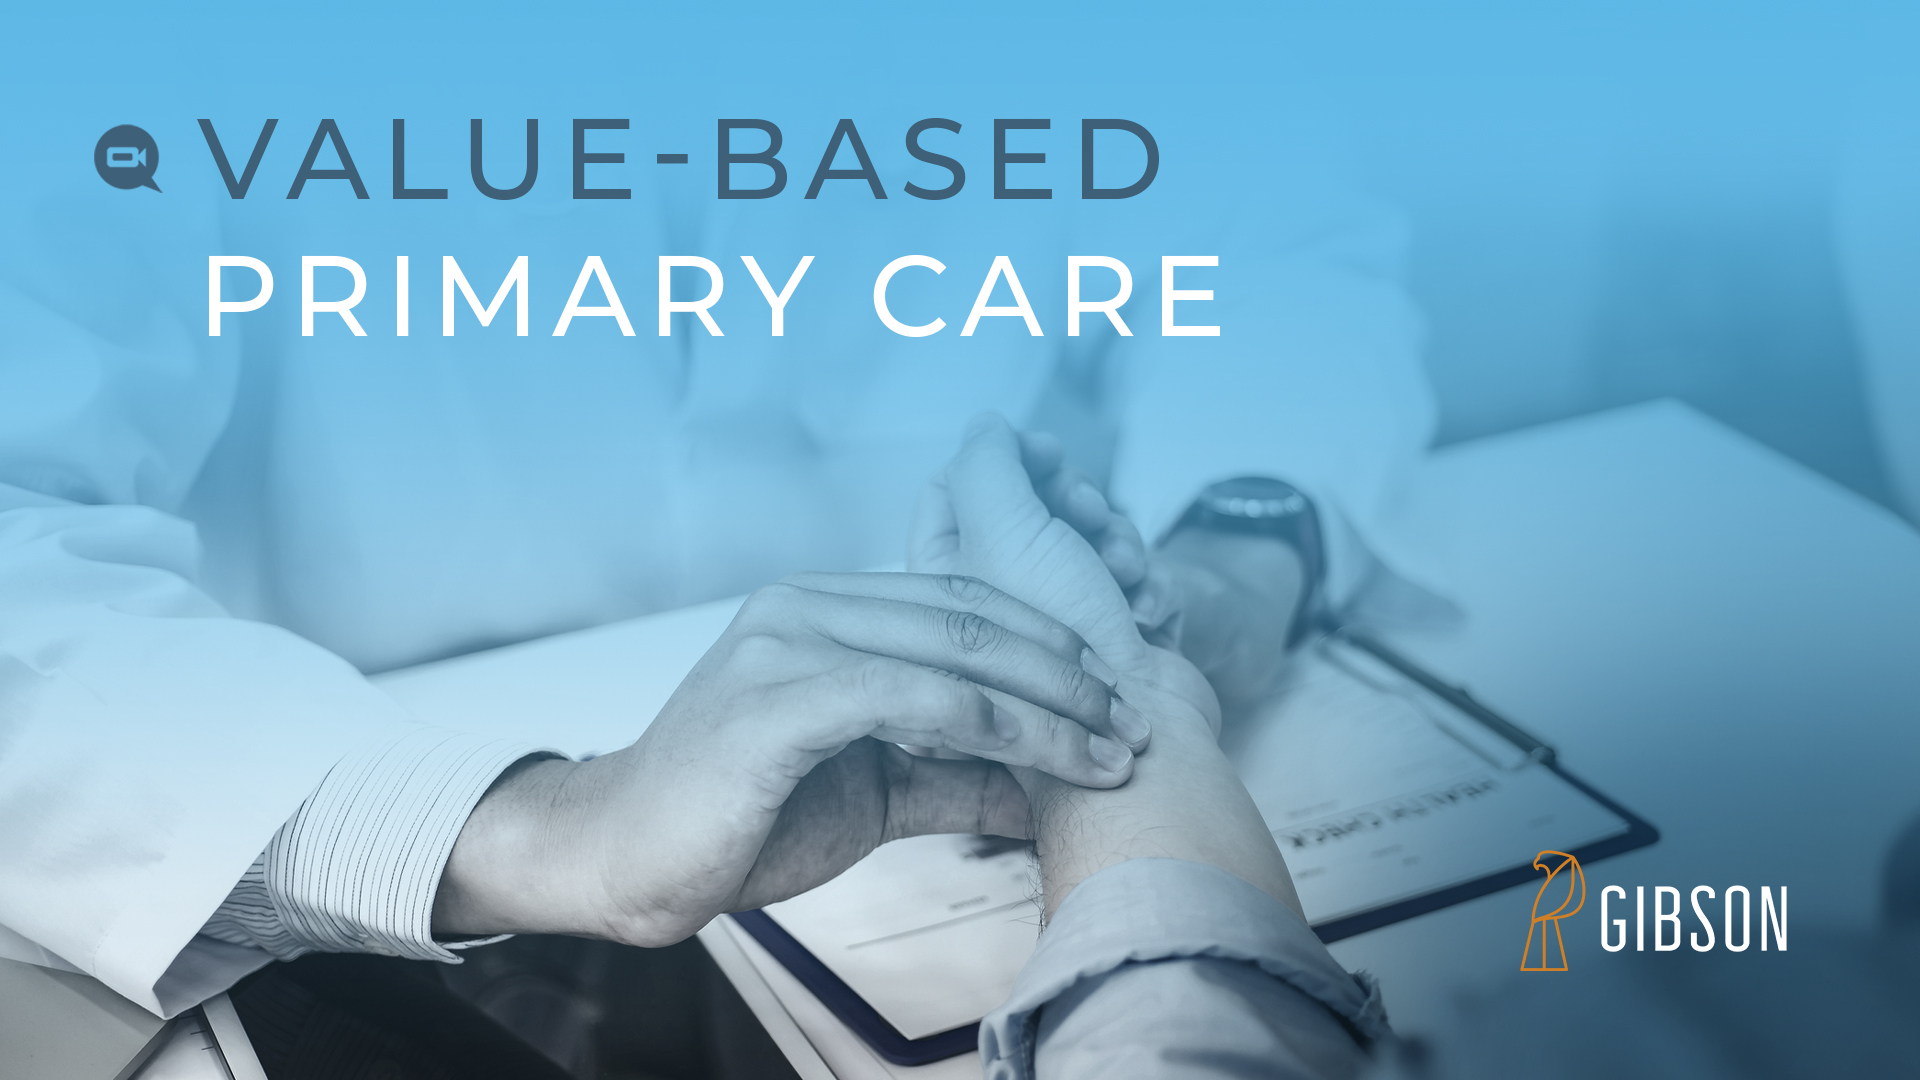 Value-Based Primary Care